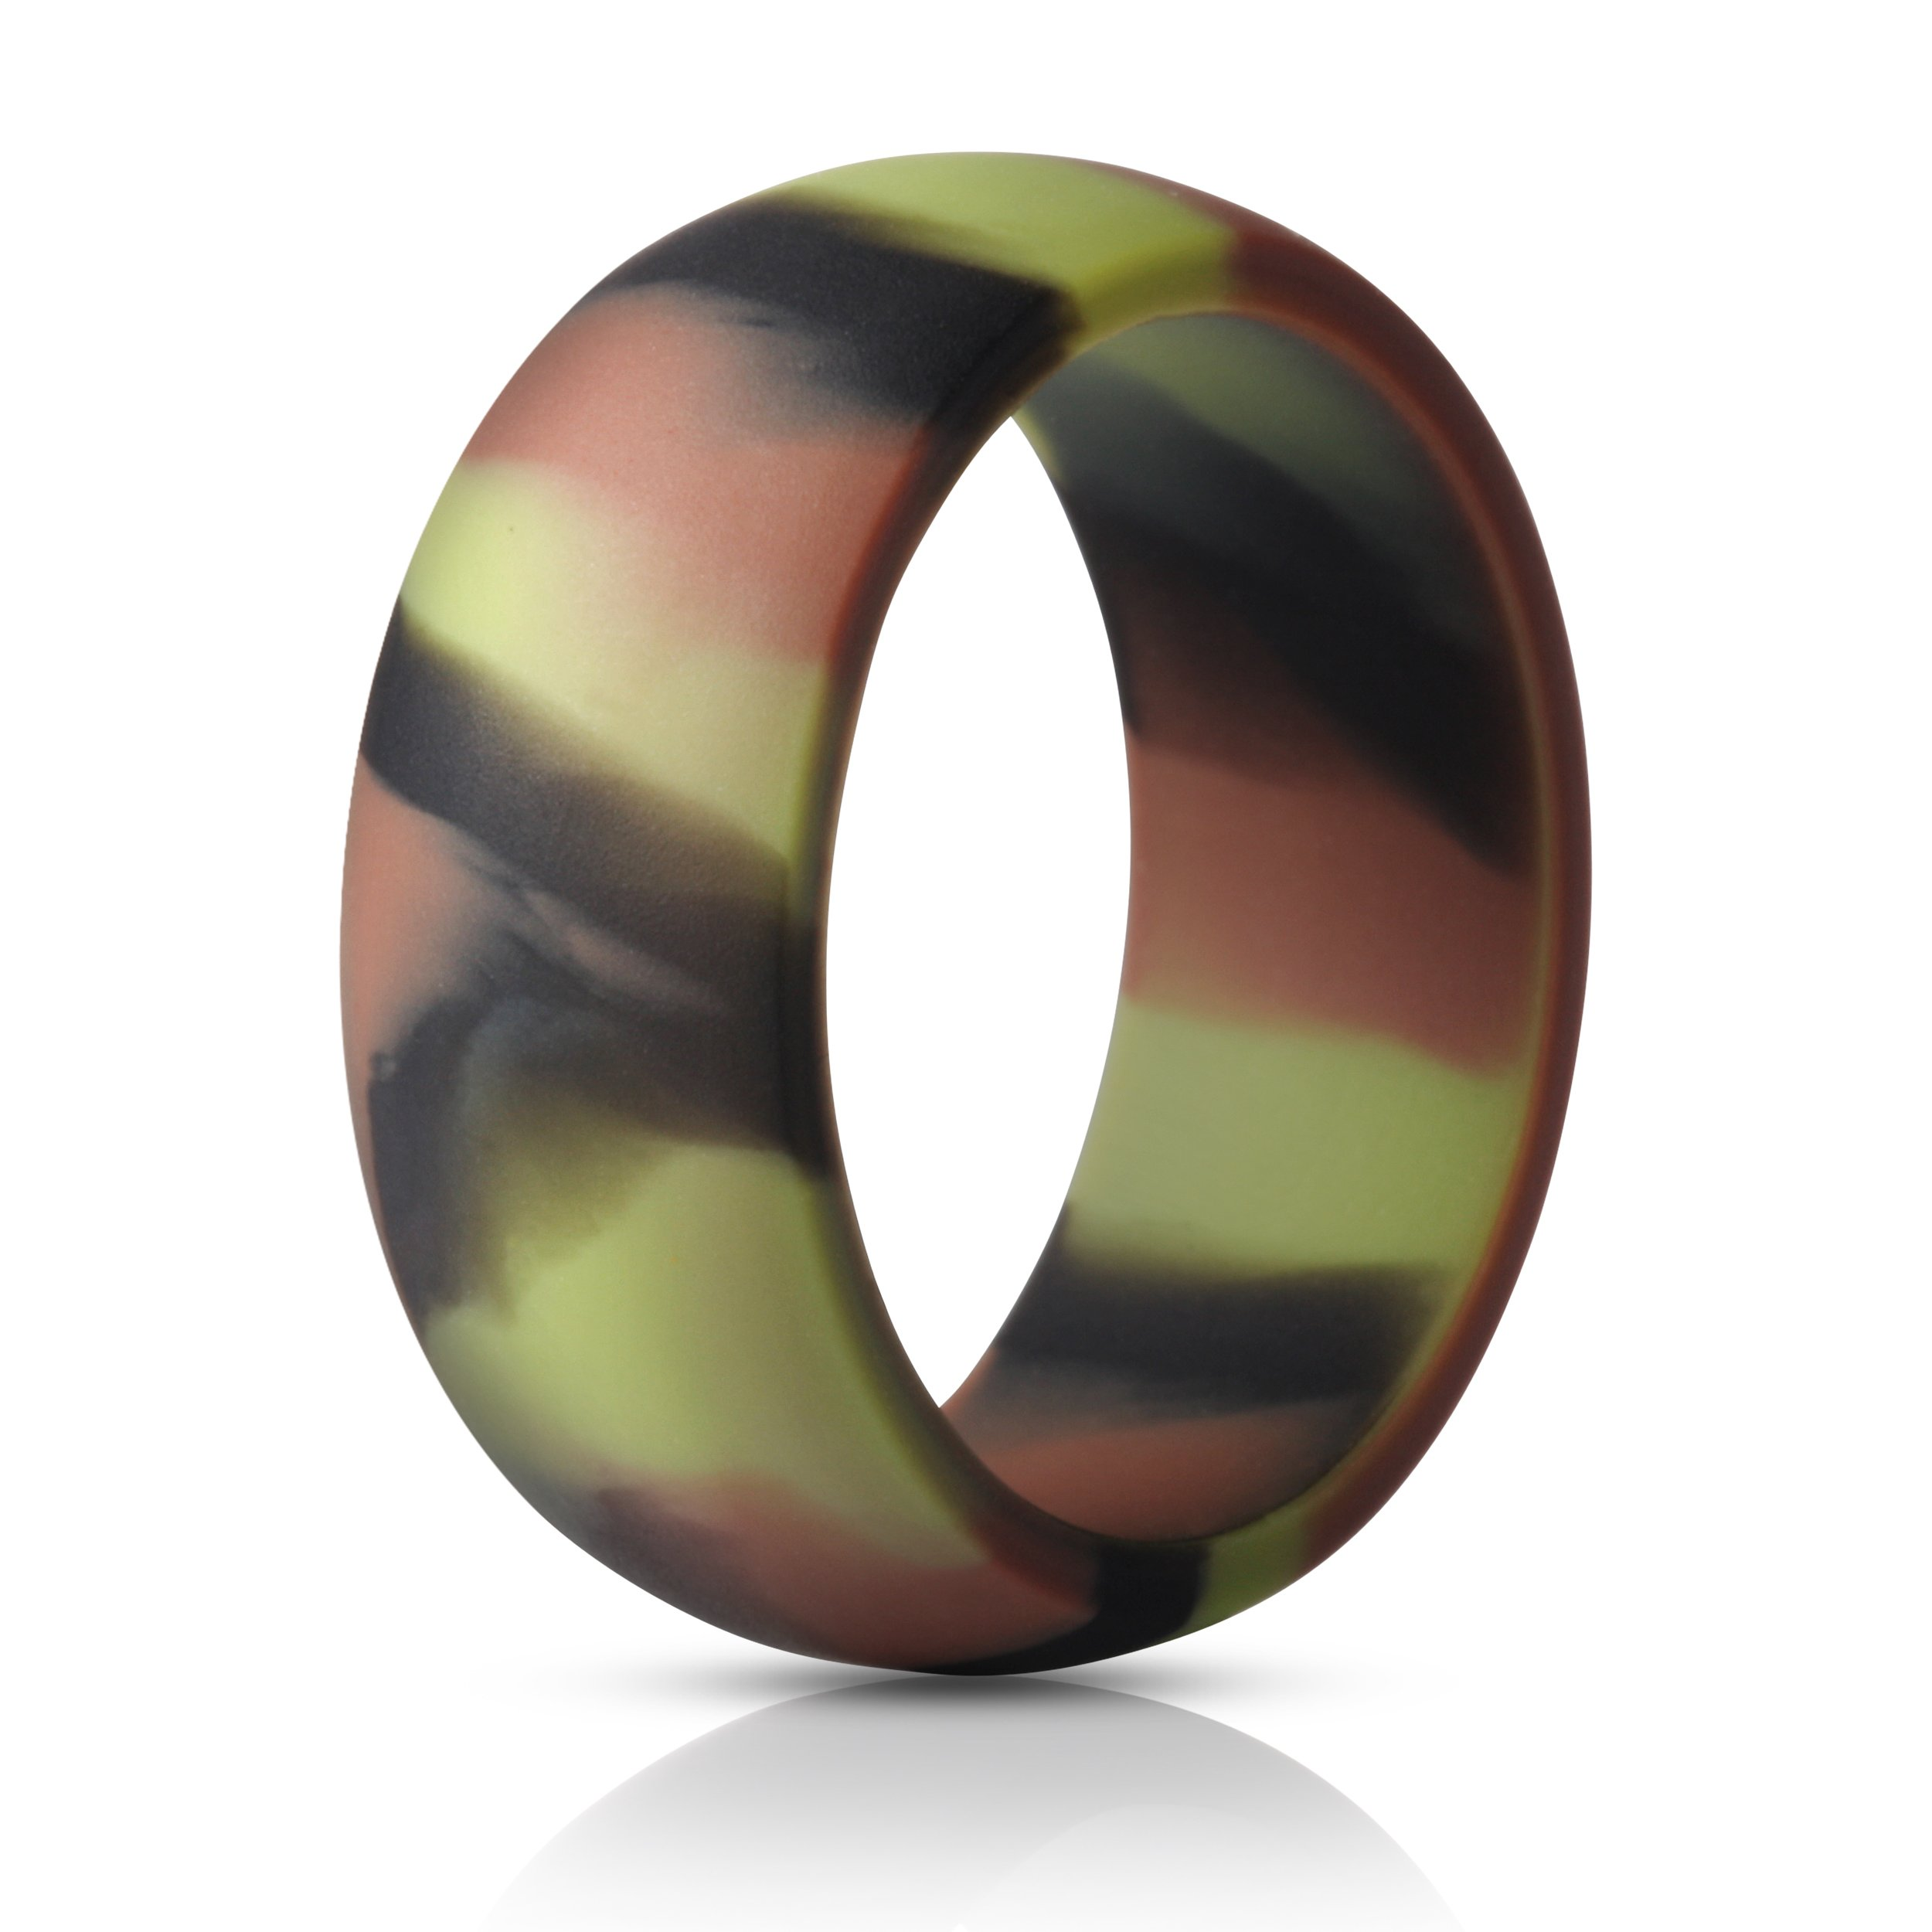 ThunderFit Silicone Ring Wedding Band for Men - 1 Ring (Camo, 10.5-11 (20.6mm))